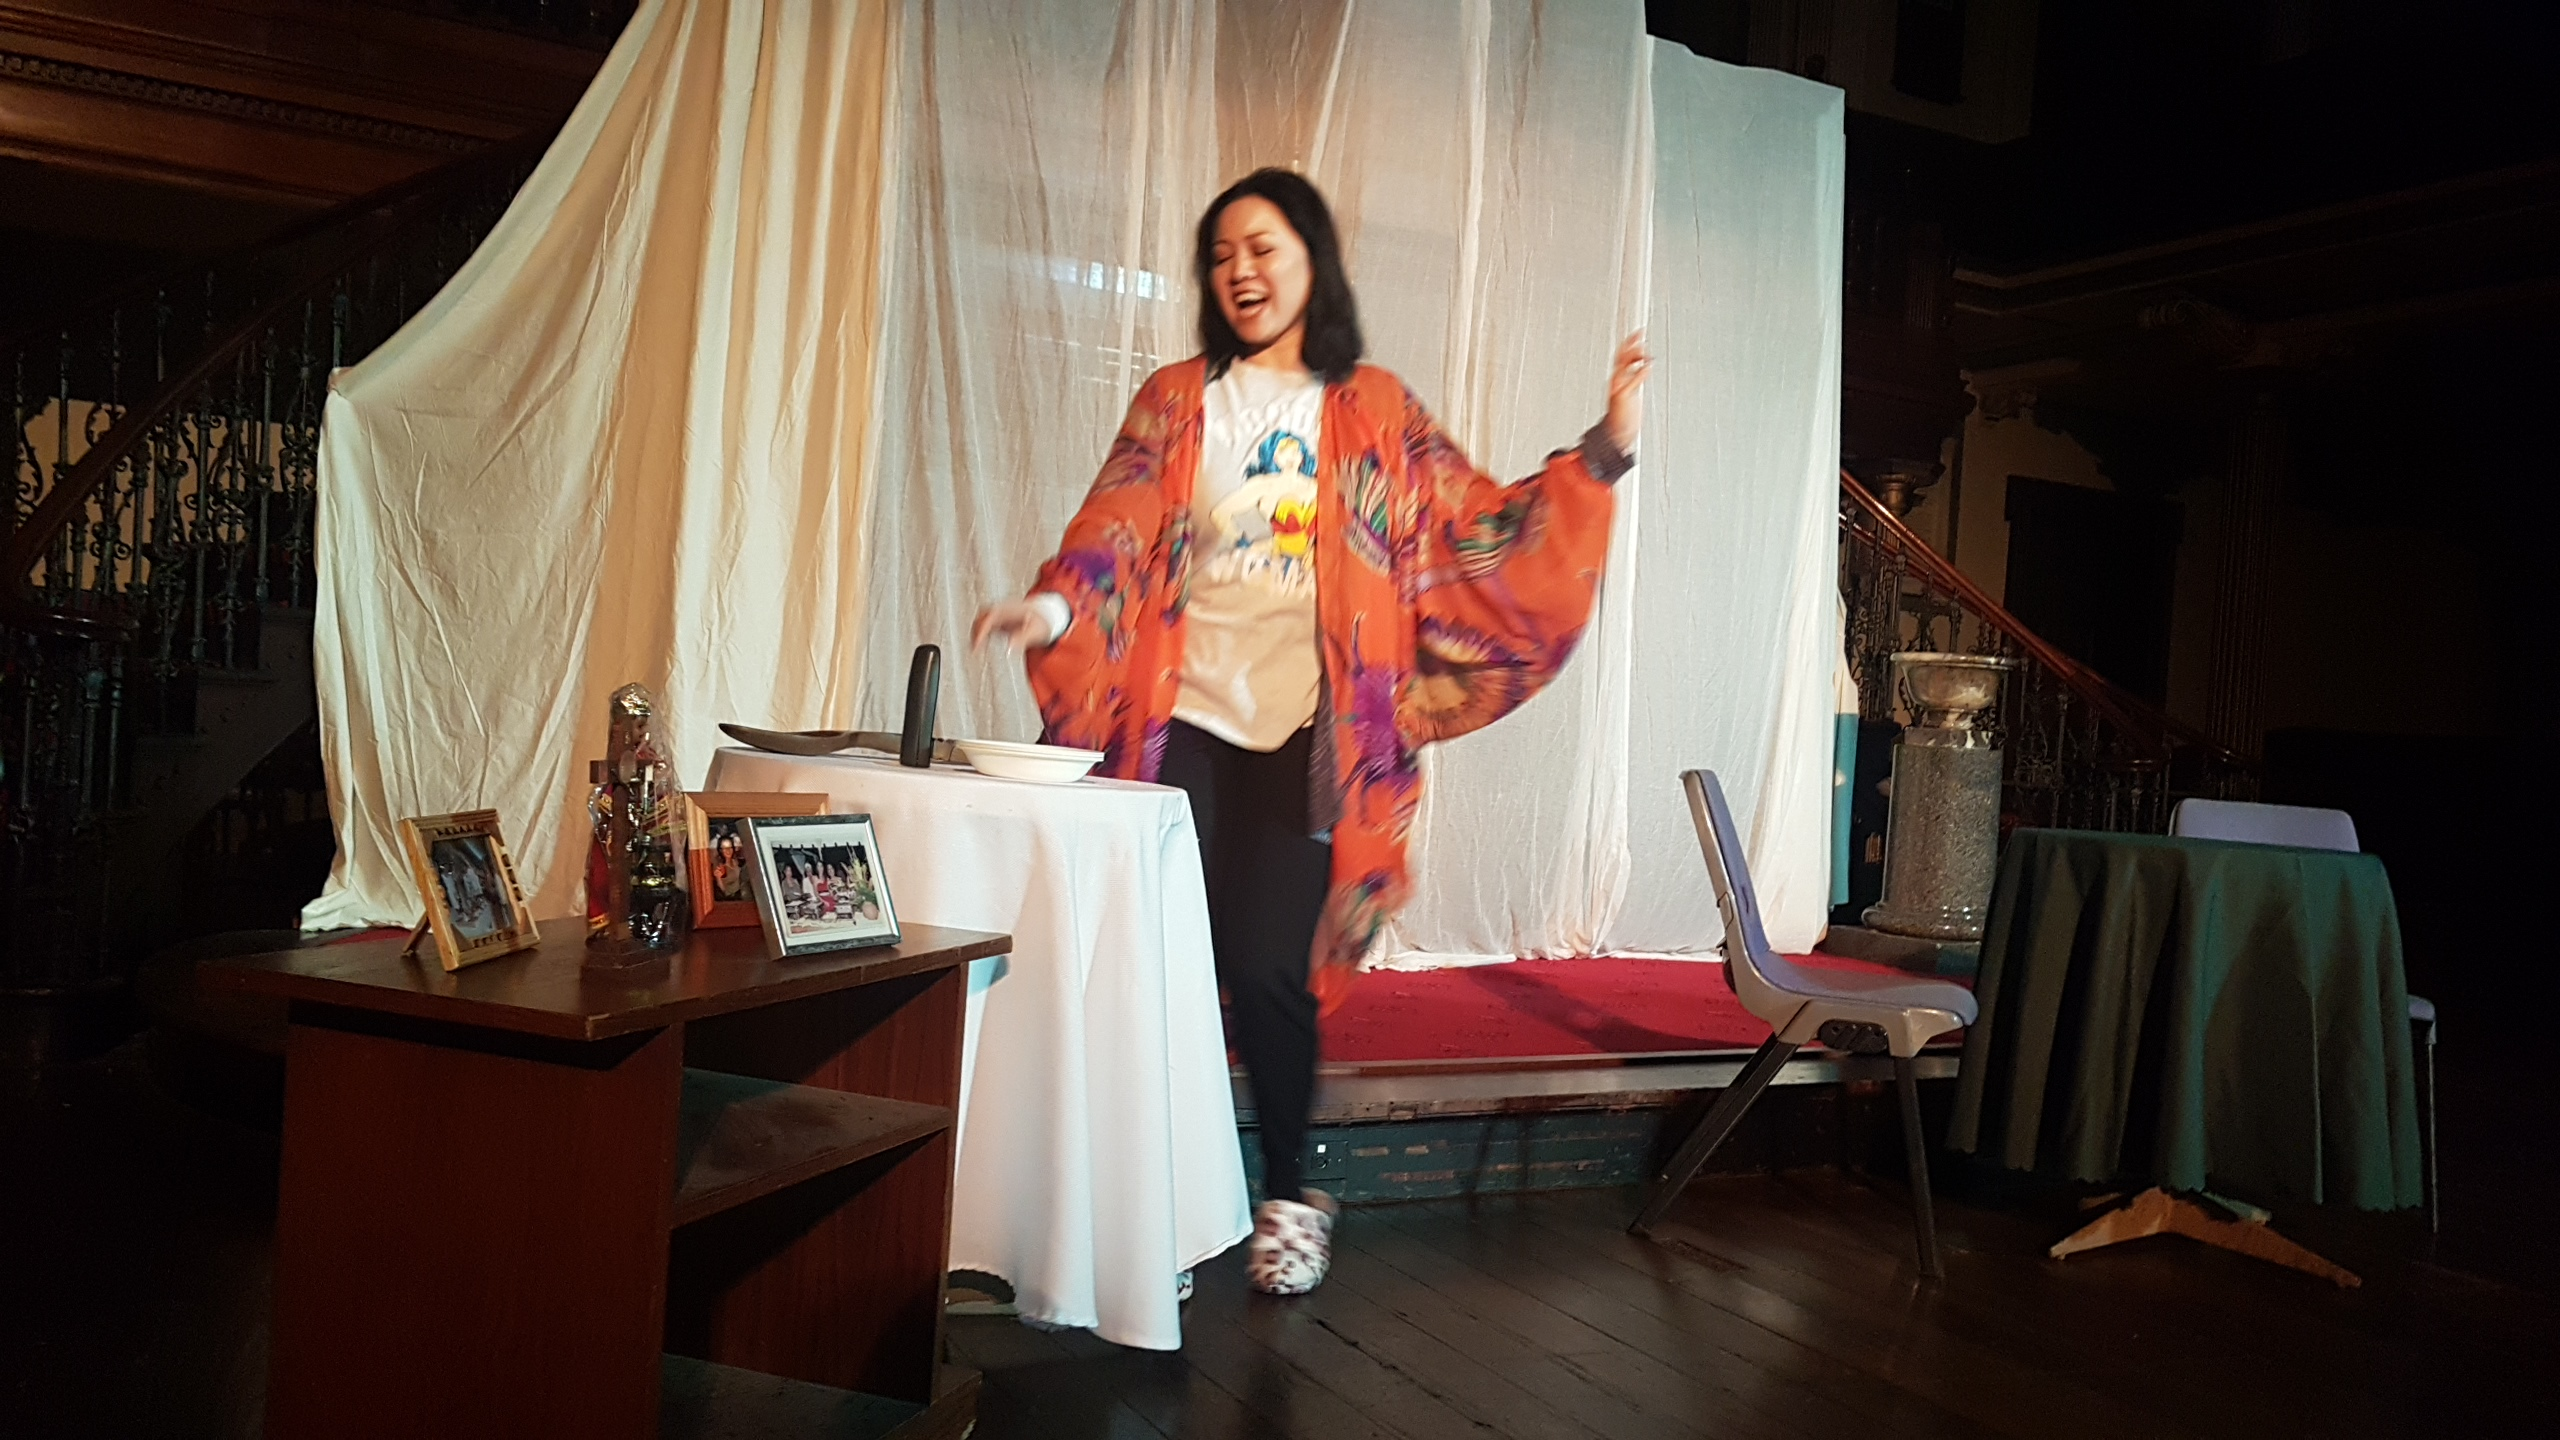 Emerging playwright Elaine Laforteza invites the audience into a typical Filipino-Australian household to discover a heartwarming story rarely told.